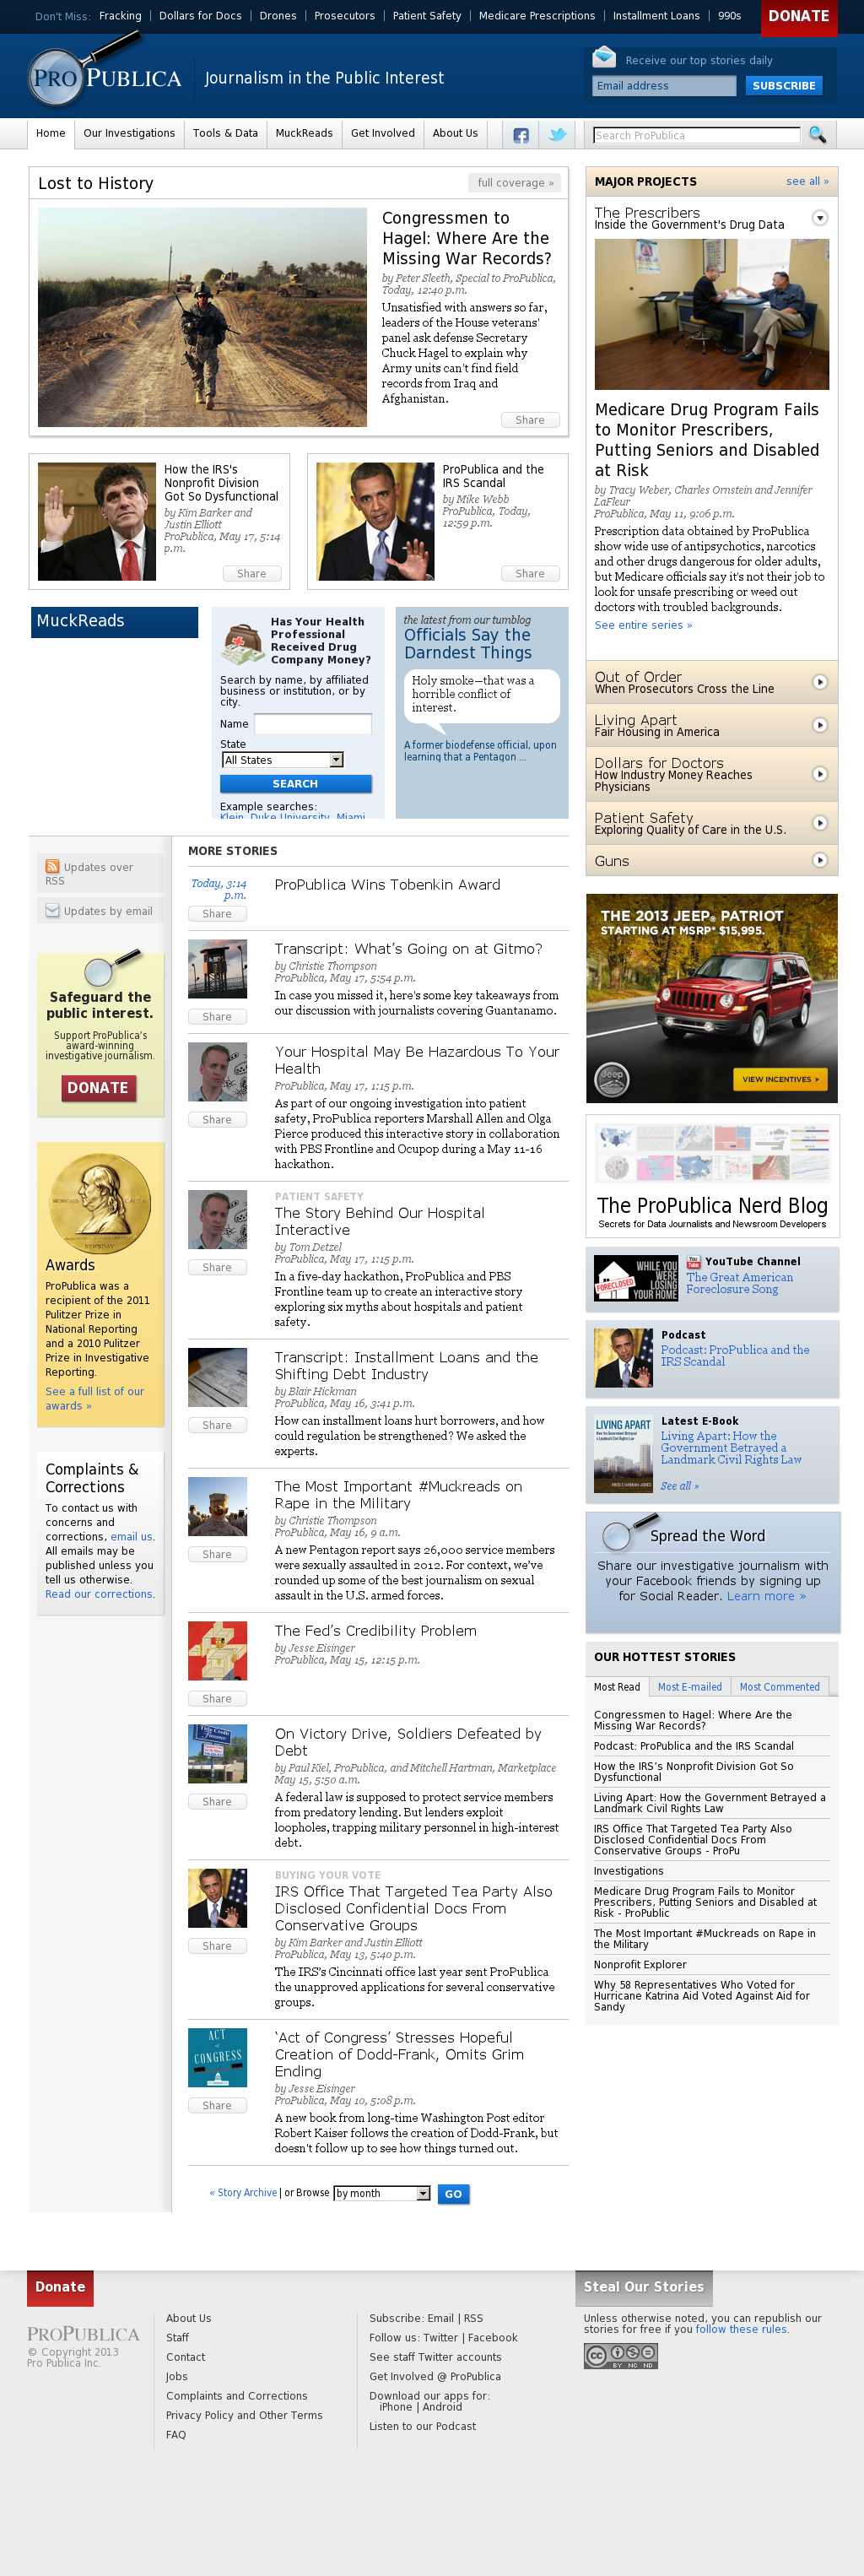 ProPublica at Tuesday May 21, 2013, 12:19 a.m. UTC